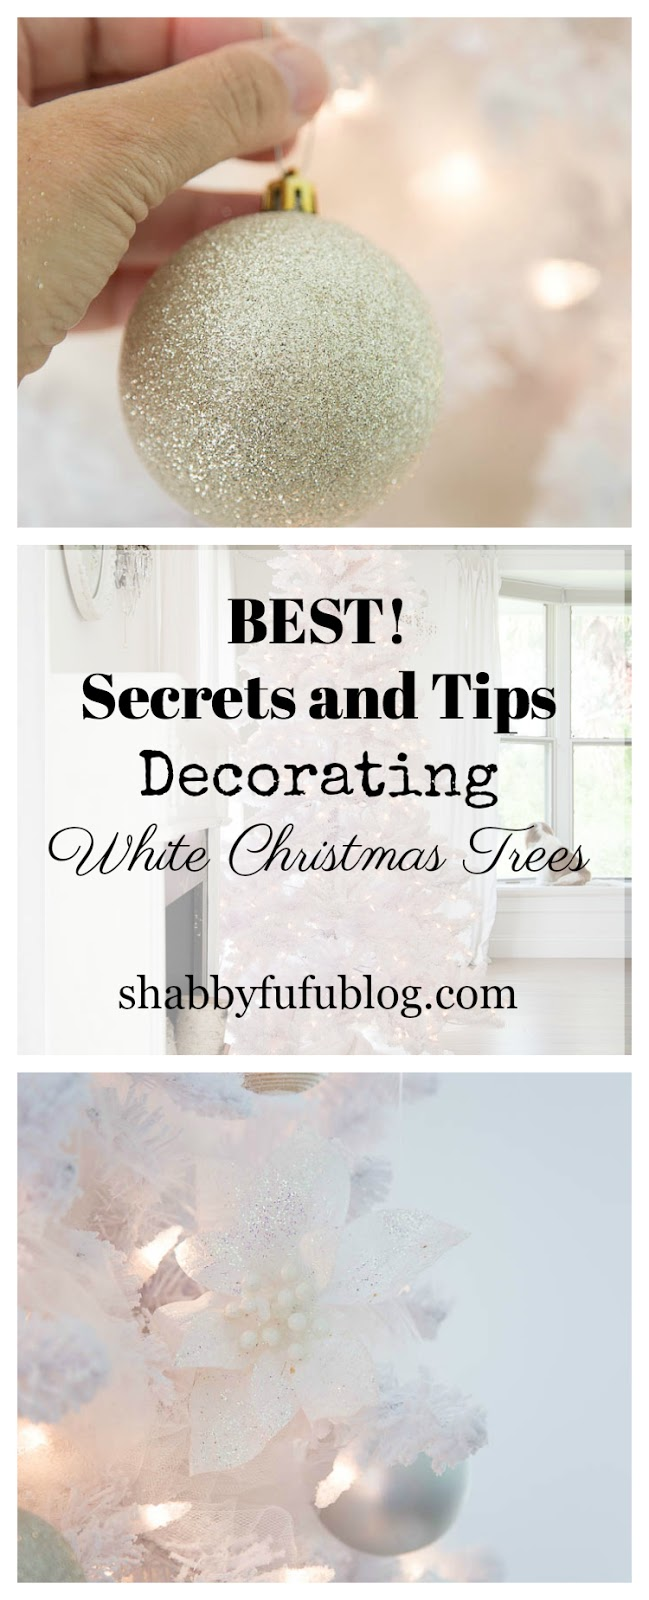 Secrets and Tips For Decorating White Christmas Trees - shabbyfufublog.com